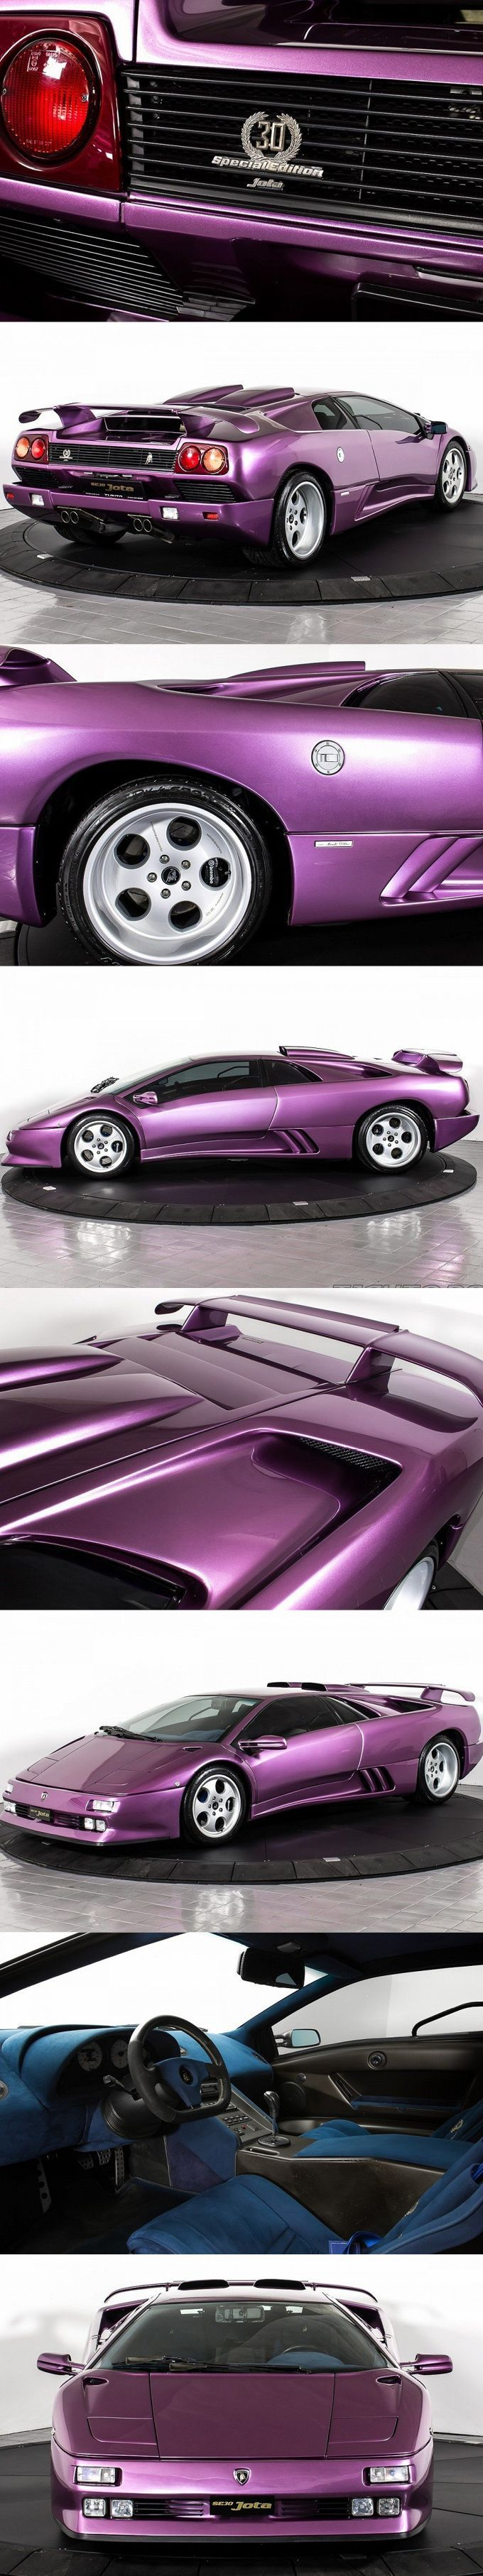 Awesome 1994 Lamborghini Diablo SE30 Jota / 15pcs / 595hp / Purple / Italy